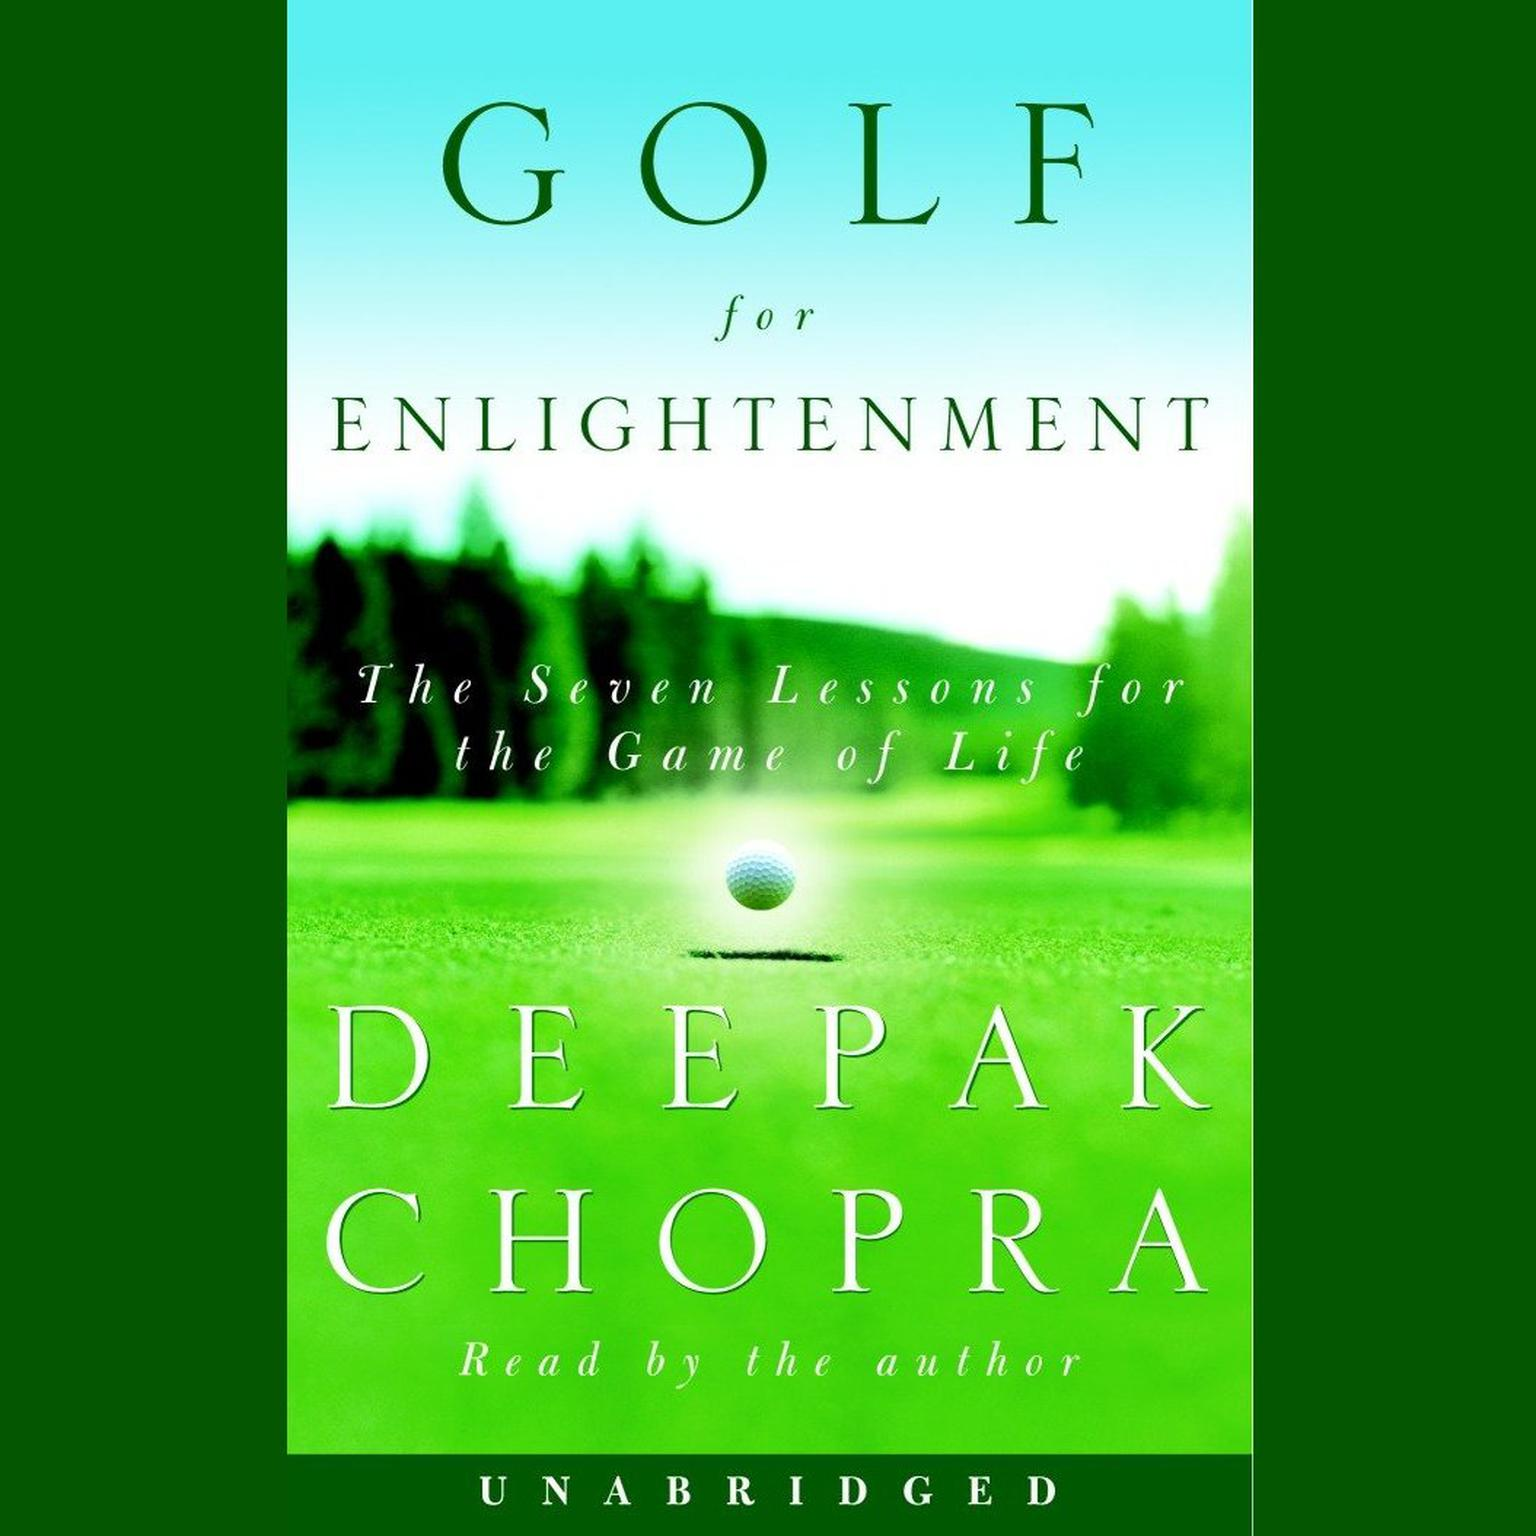 Printable Golf for Enlightenment: The Seven Lessons for the Game of Life Audiobook Cover Art